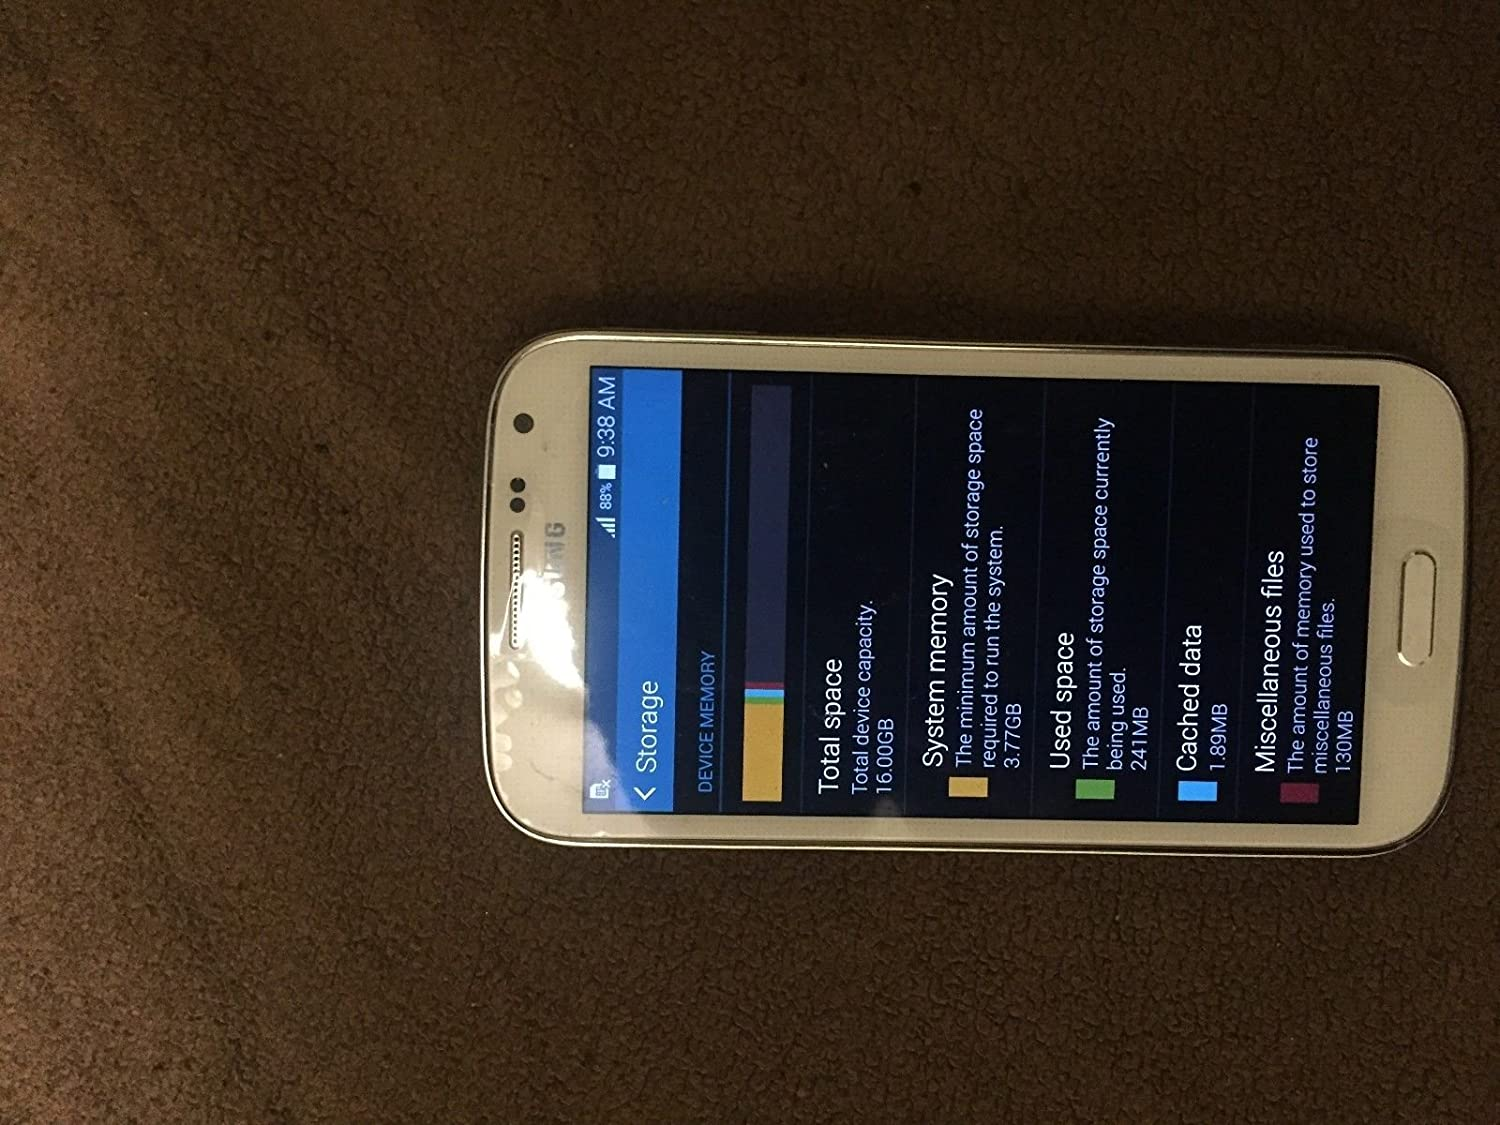 Samsung Galaxy K S5 Zoom Sm C111 Unlocked Gsm Quad 8gb White Core Camera Android Smartphone Cell Phones Accessories